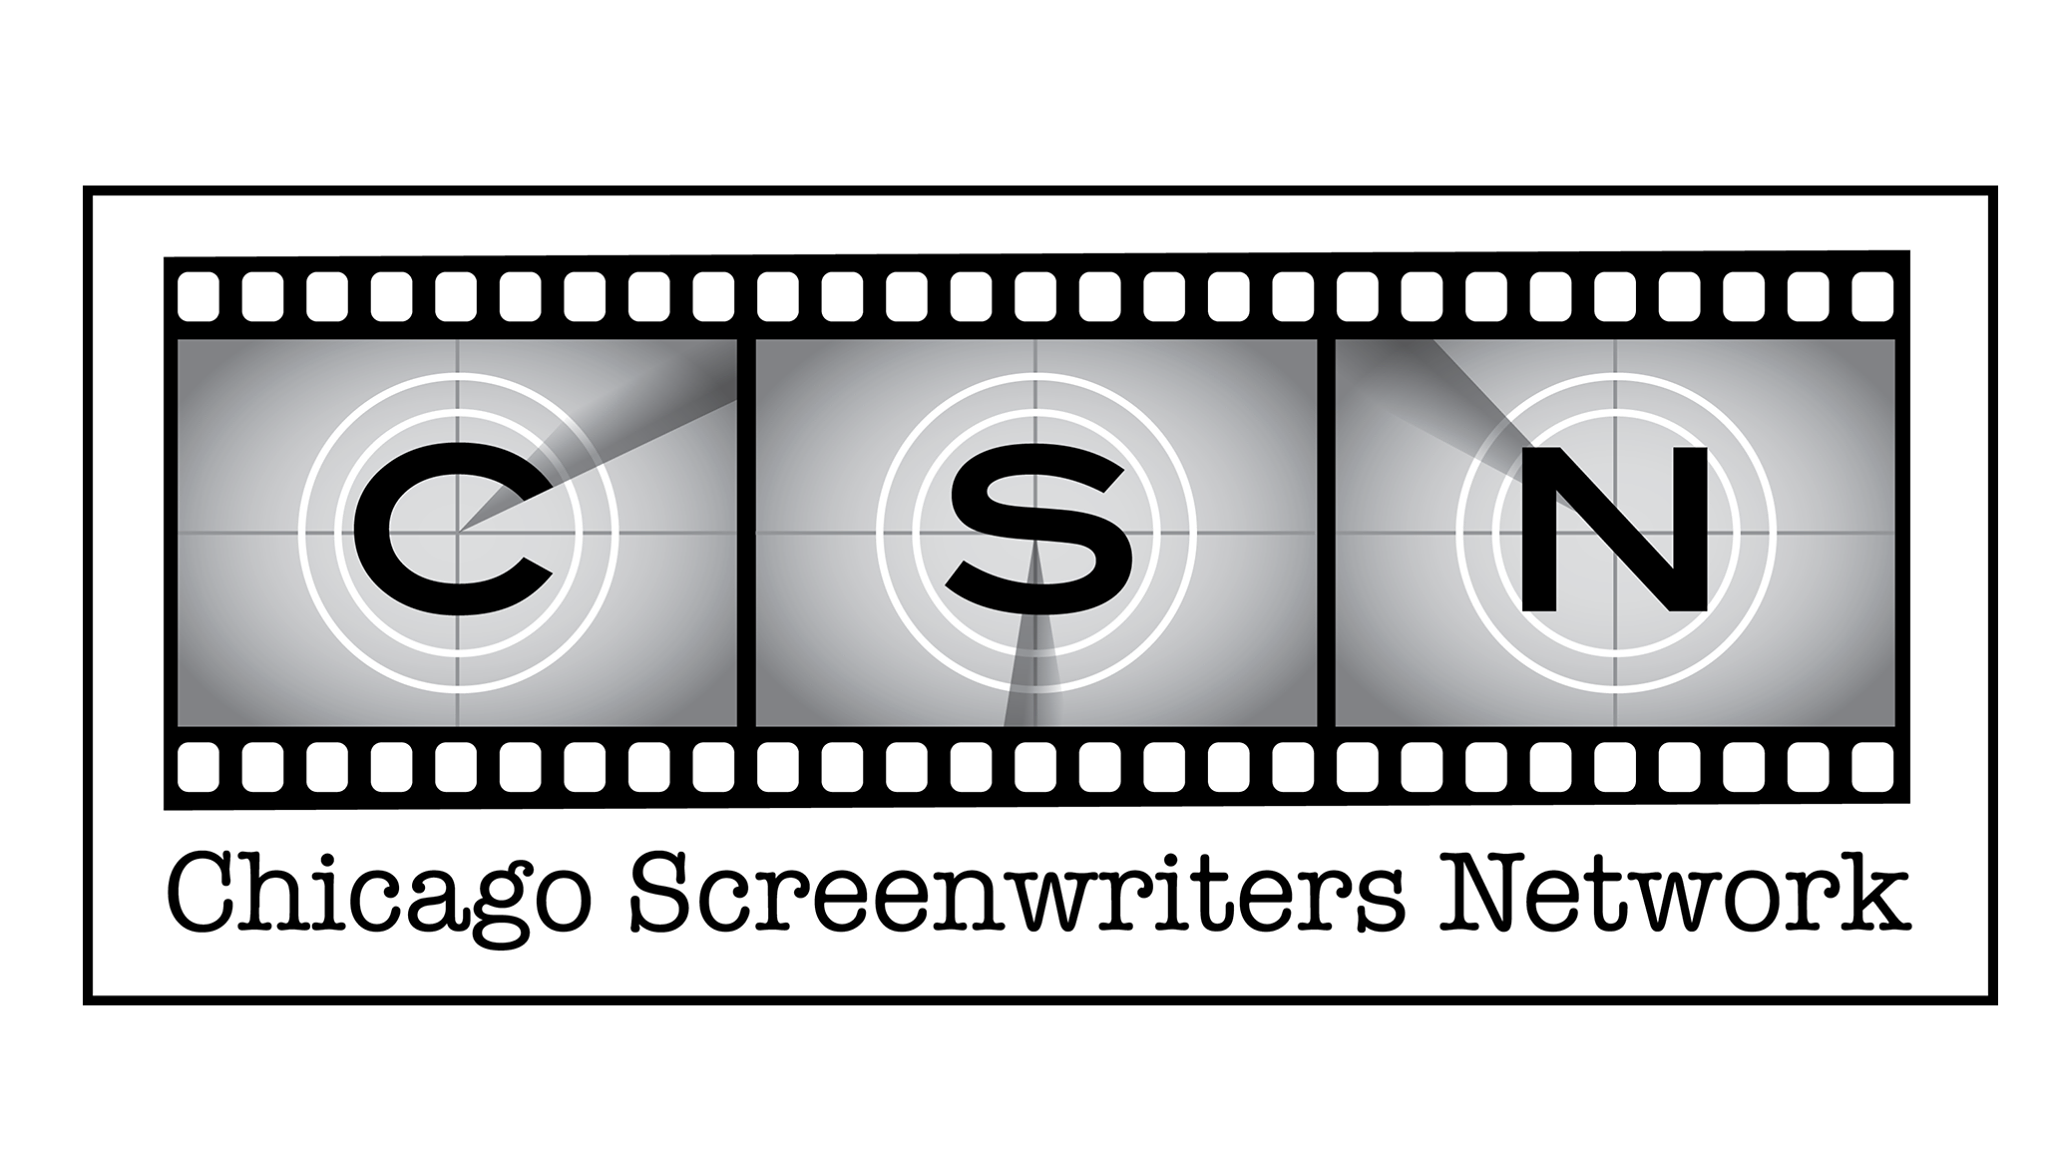 Chicago Screenwriters Network